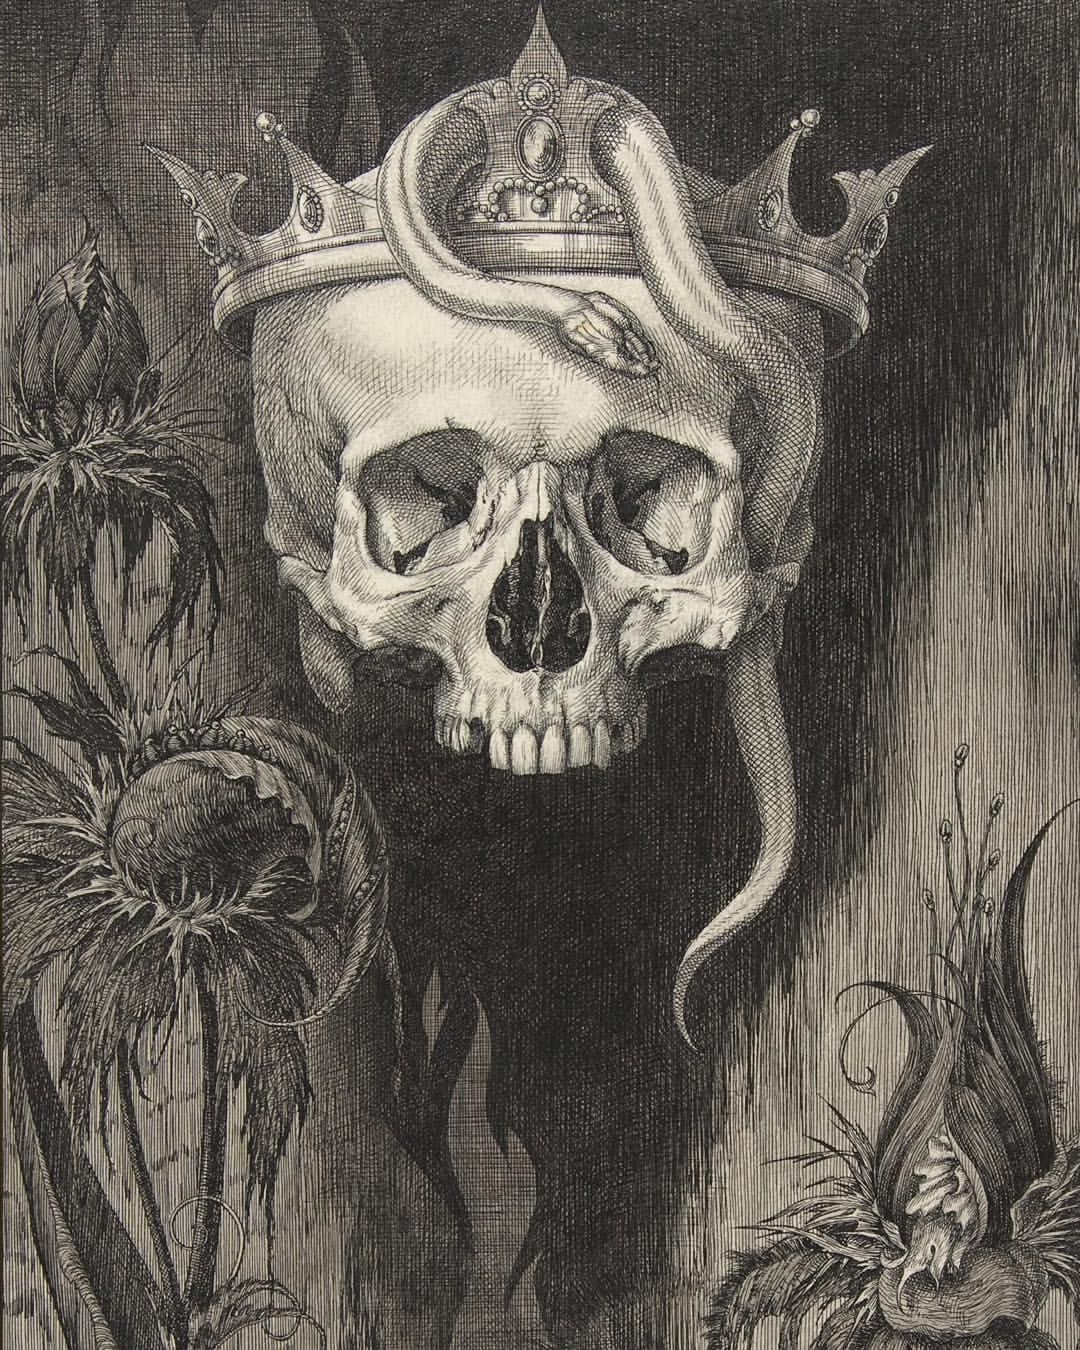 1080x1350 Enjoy Friday The 13th With This Spooky Drawing From The Collection